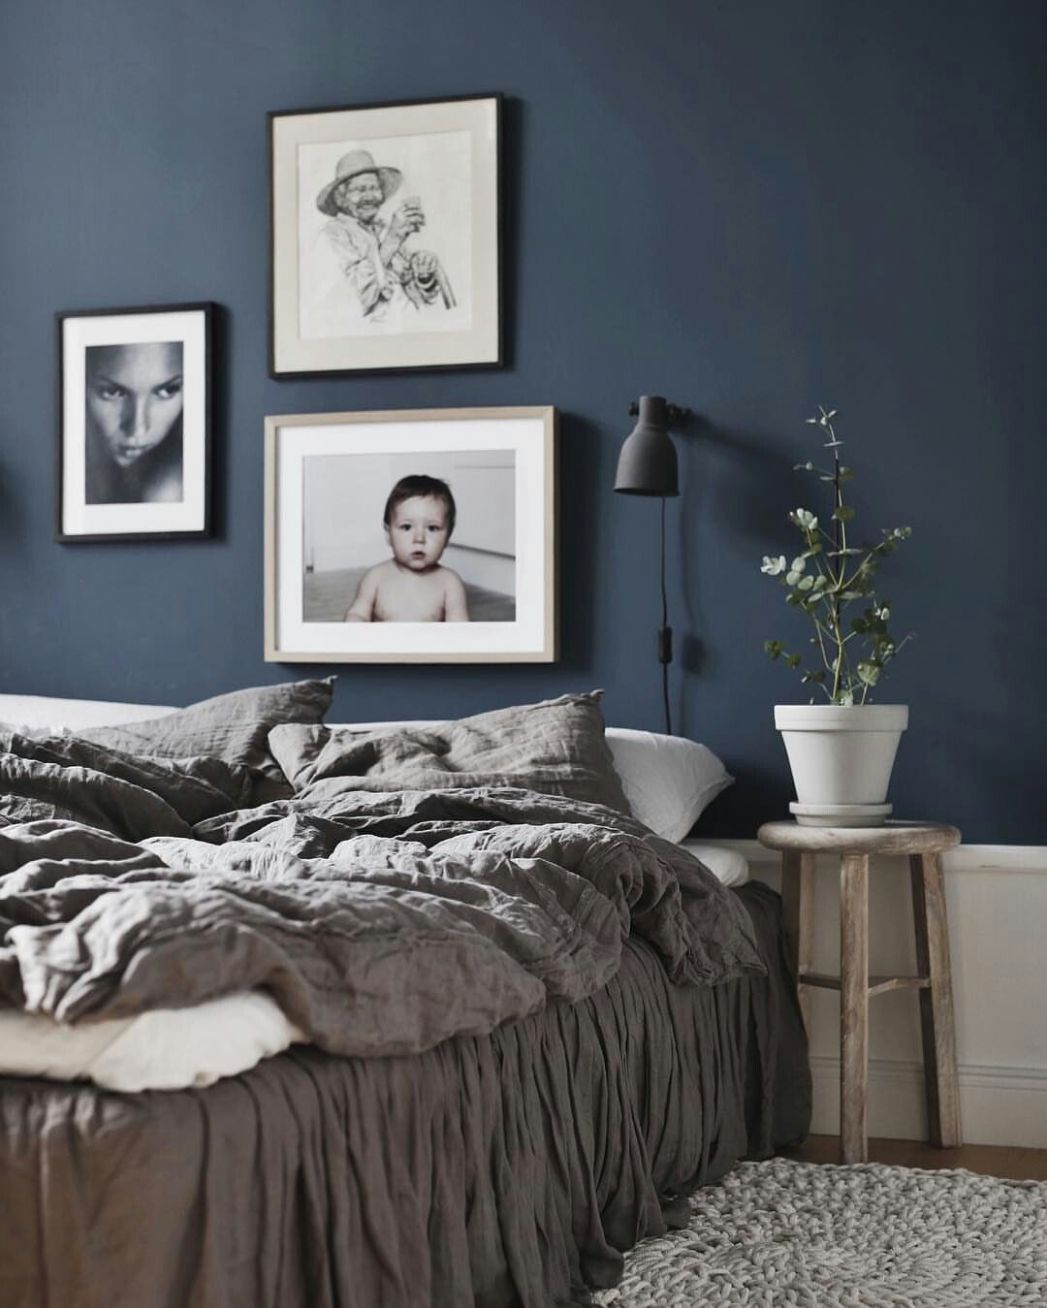 Dark blue bedroom wall | Dunkelgraues schlafzimmer, Schlafzimmer ..